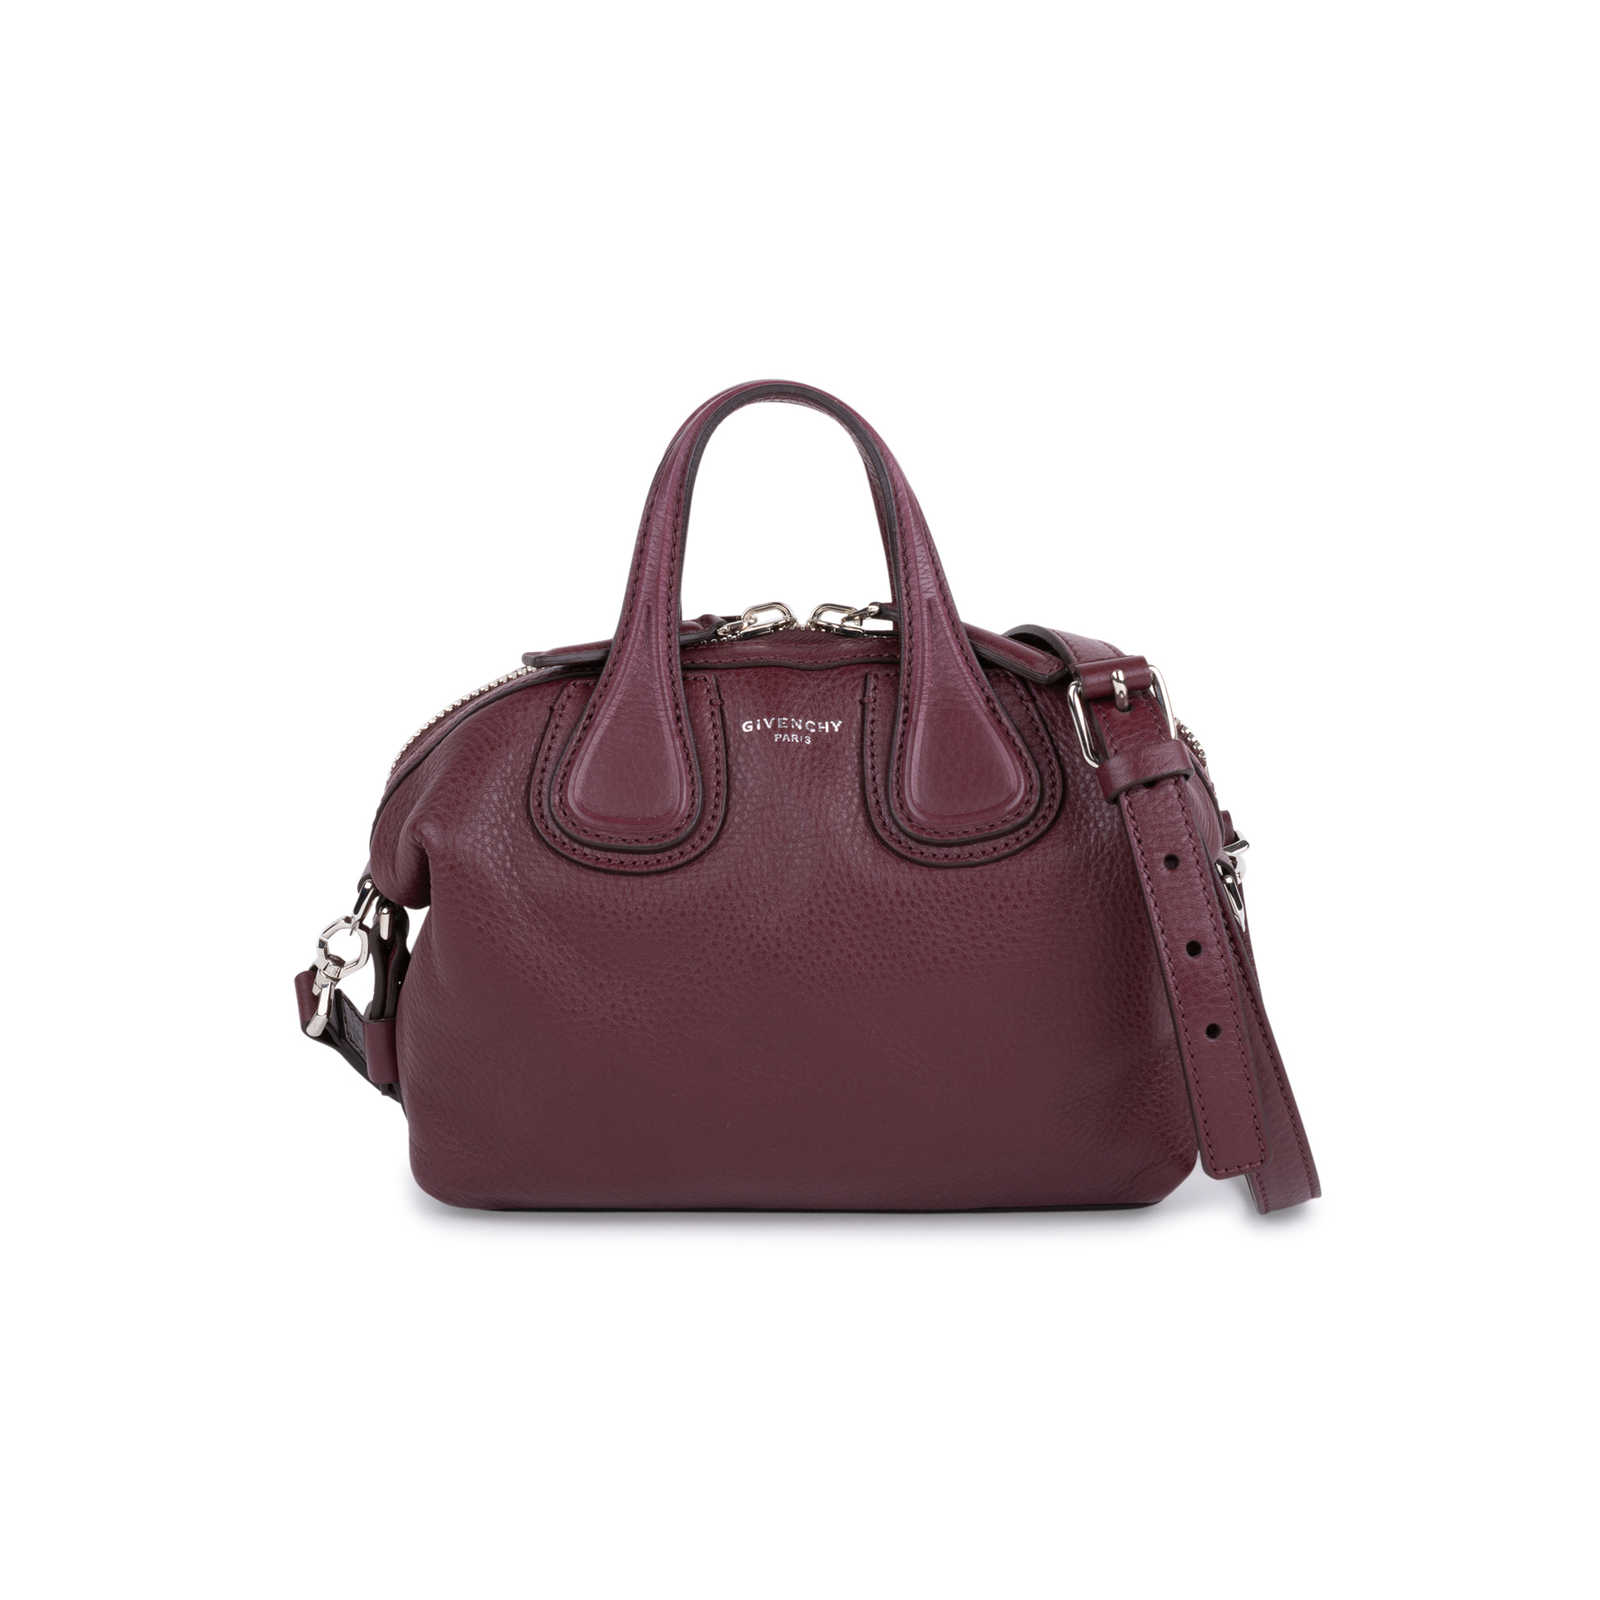 36dd0d37e029 Authentic Second Hand Givenchy Micro Nightingale Bag (PSS-034-00023) -  Thumbnail ...